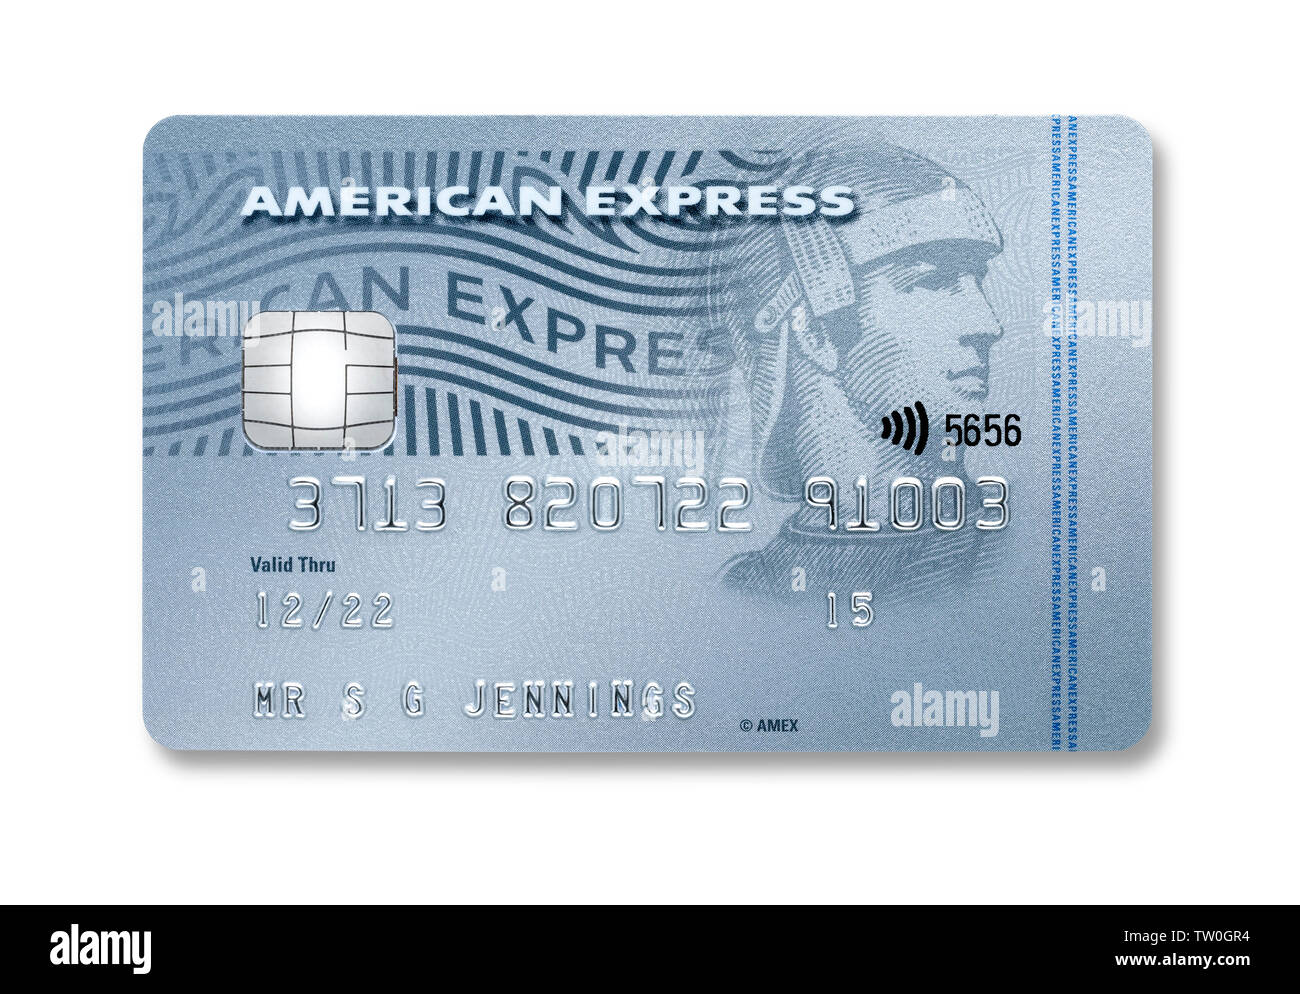 An American Express credit card Stock Photo